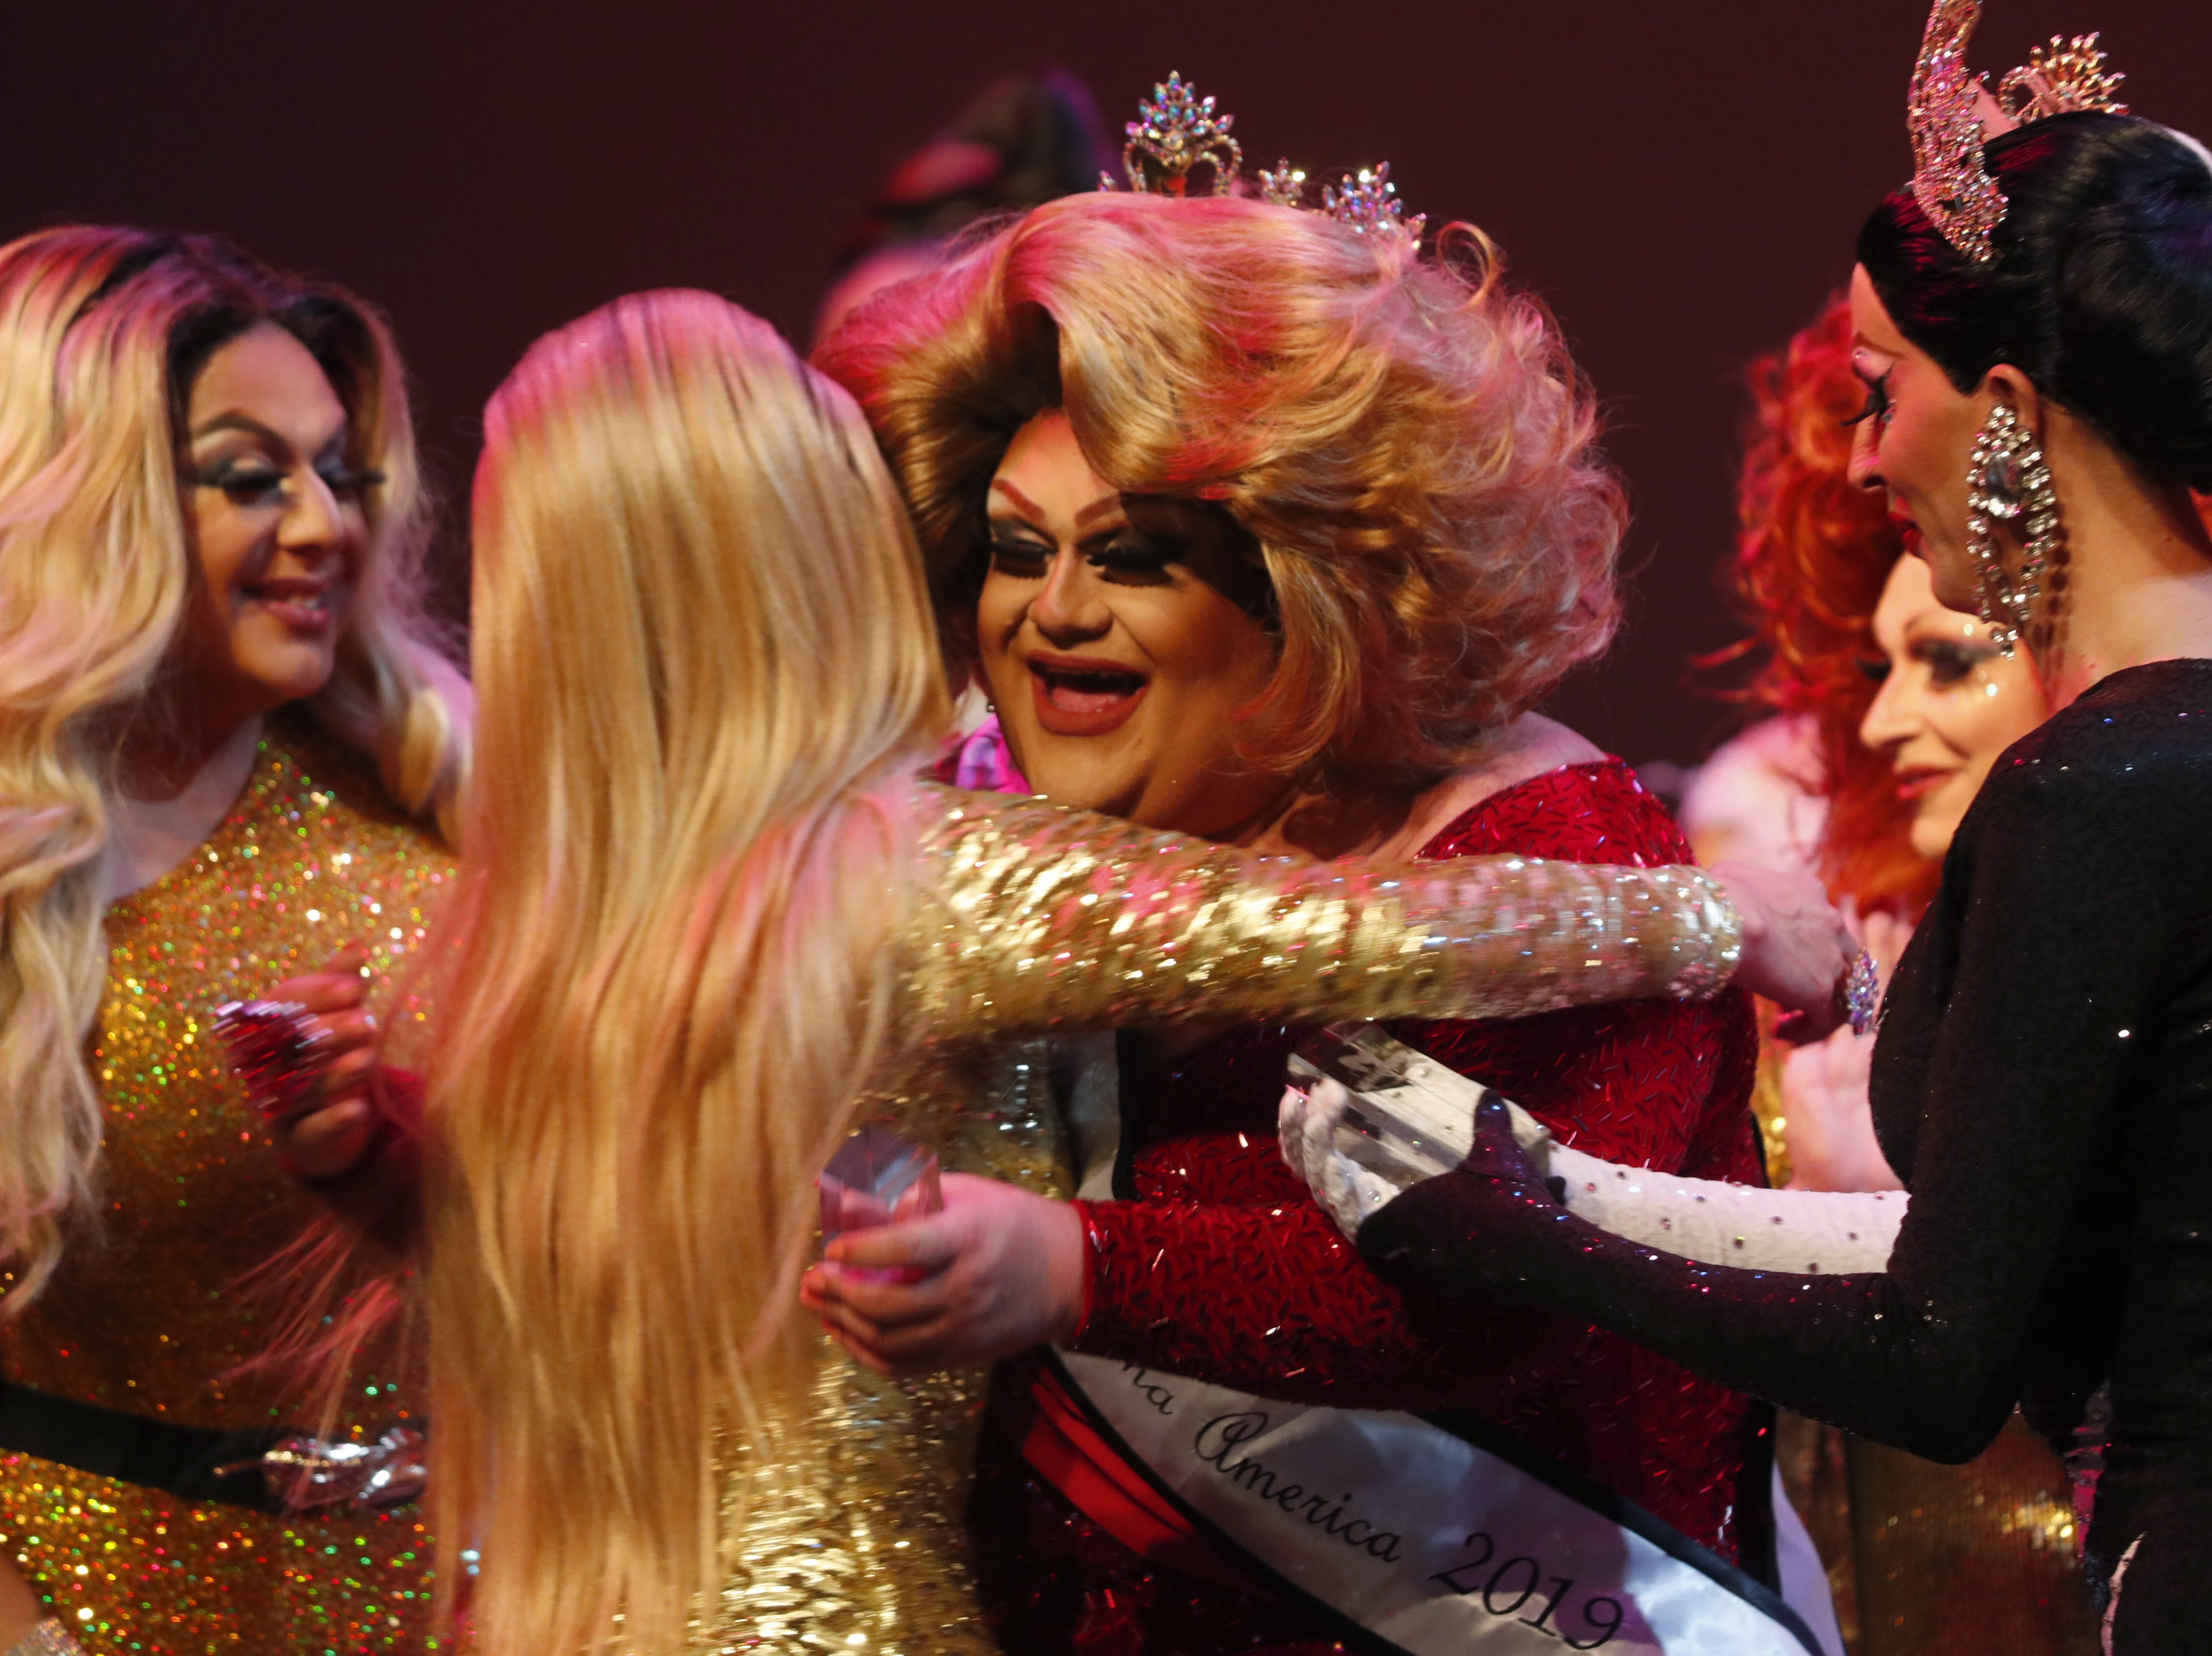 Espressa Grande reacts after winning the Miss Gay Arizona America pageant 2019 at Tempe Center for the Arts on May 11, 2019.